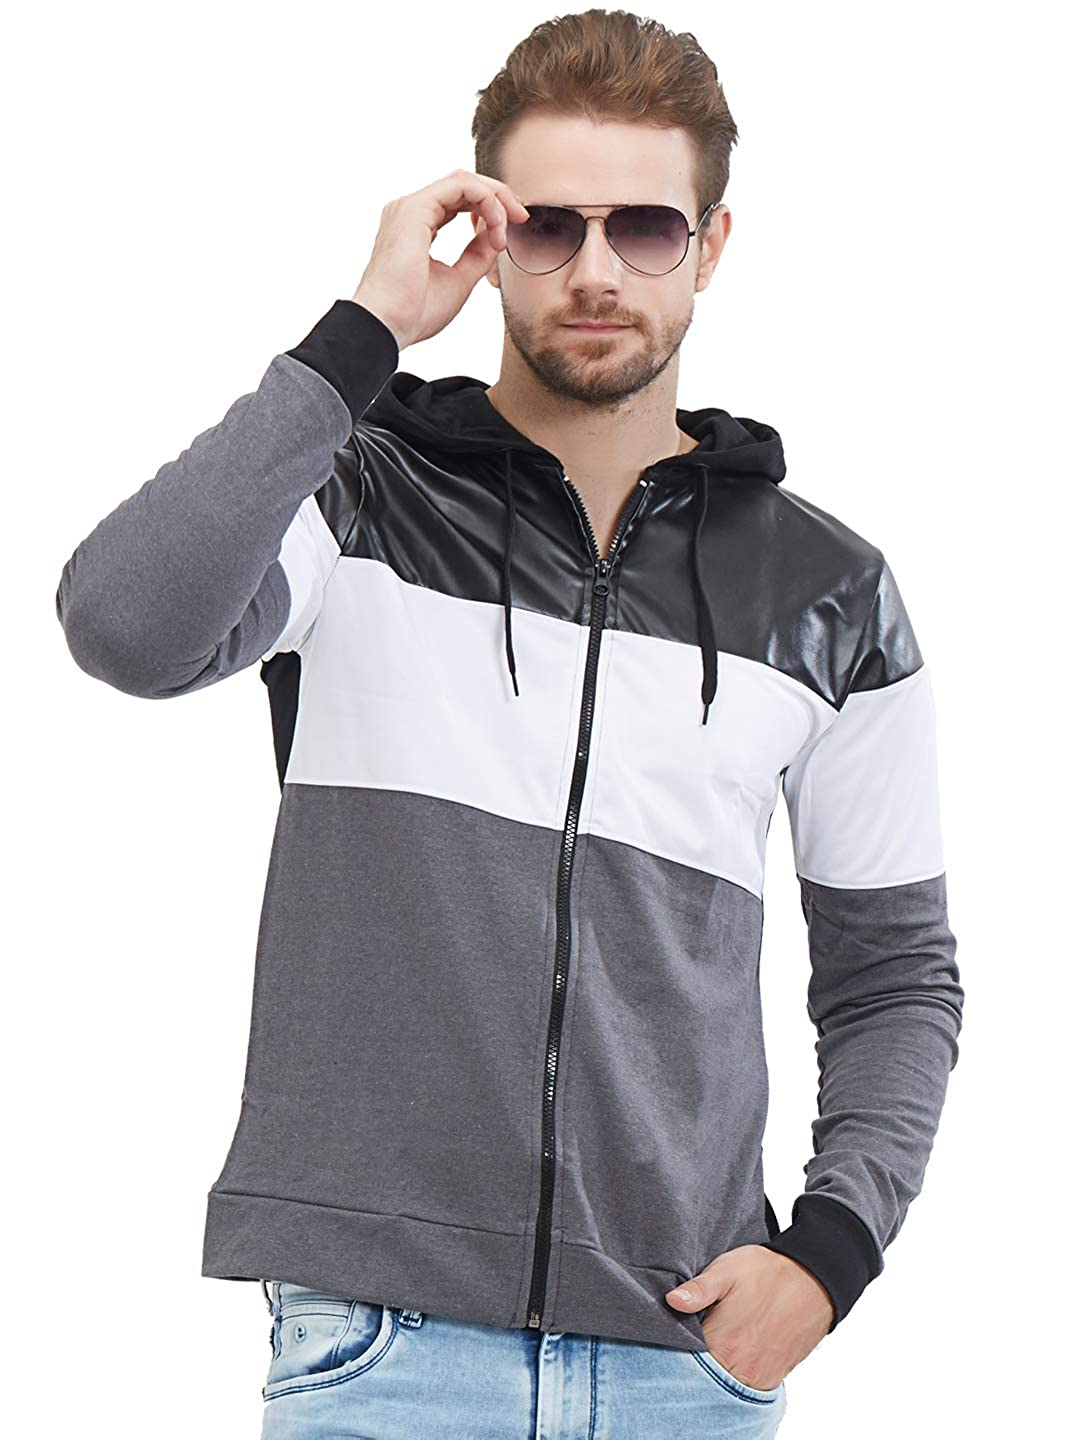 LEWEL Men's Stylish, Young & Trendy Faux Leather/Rexin, Superpoly & Loopknit Hooded Black, White & Grey Jacket